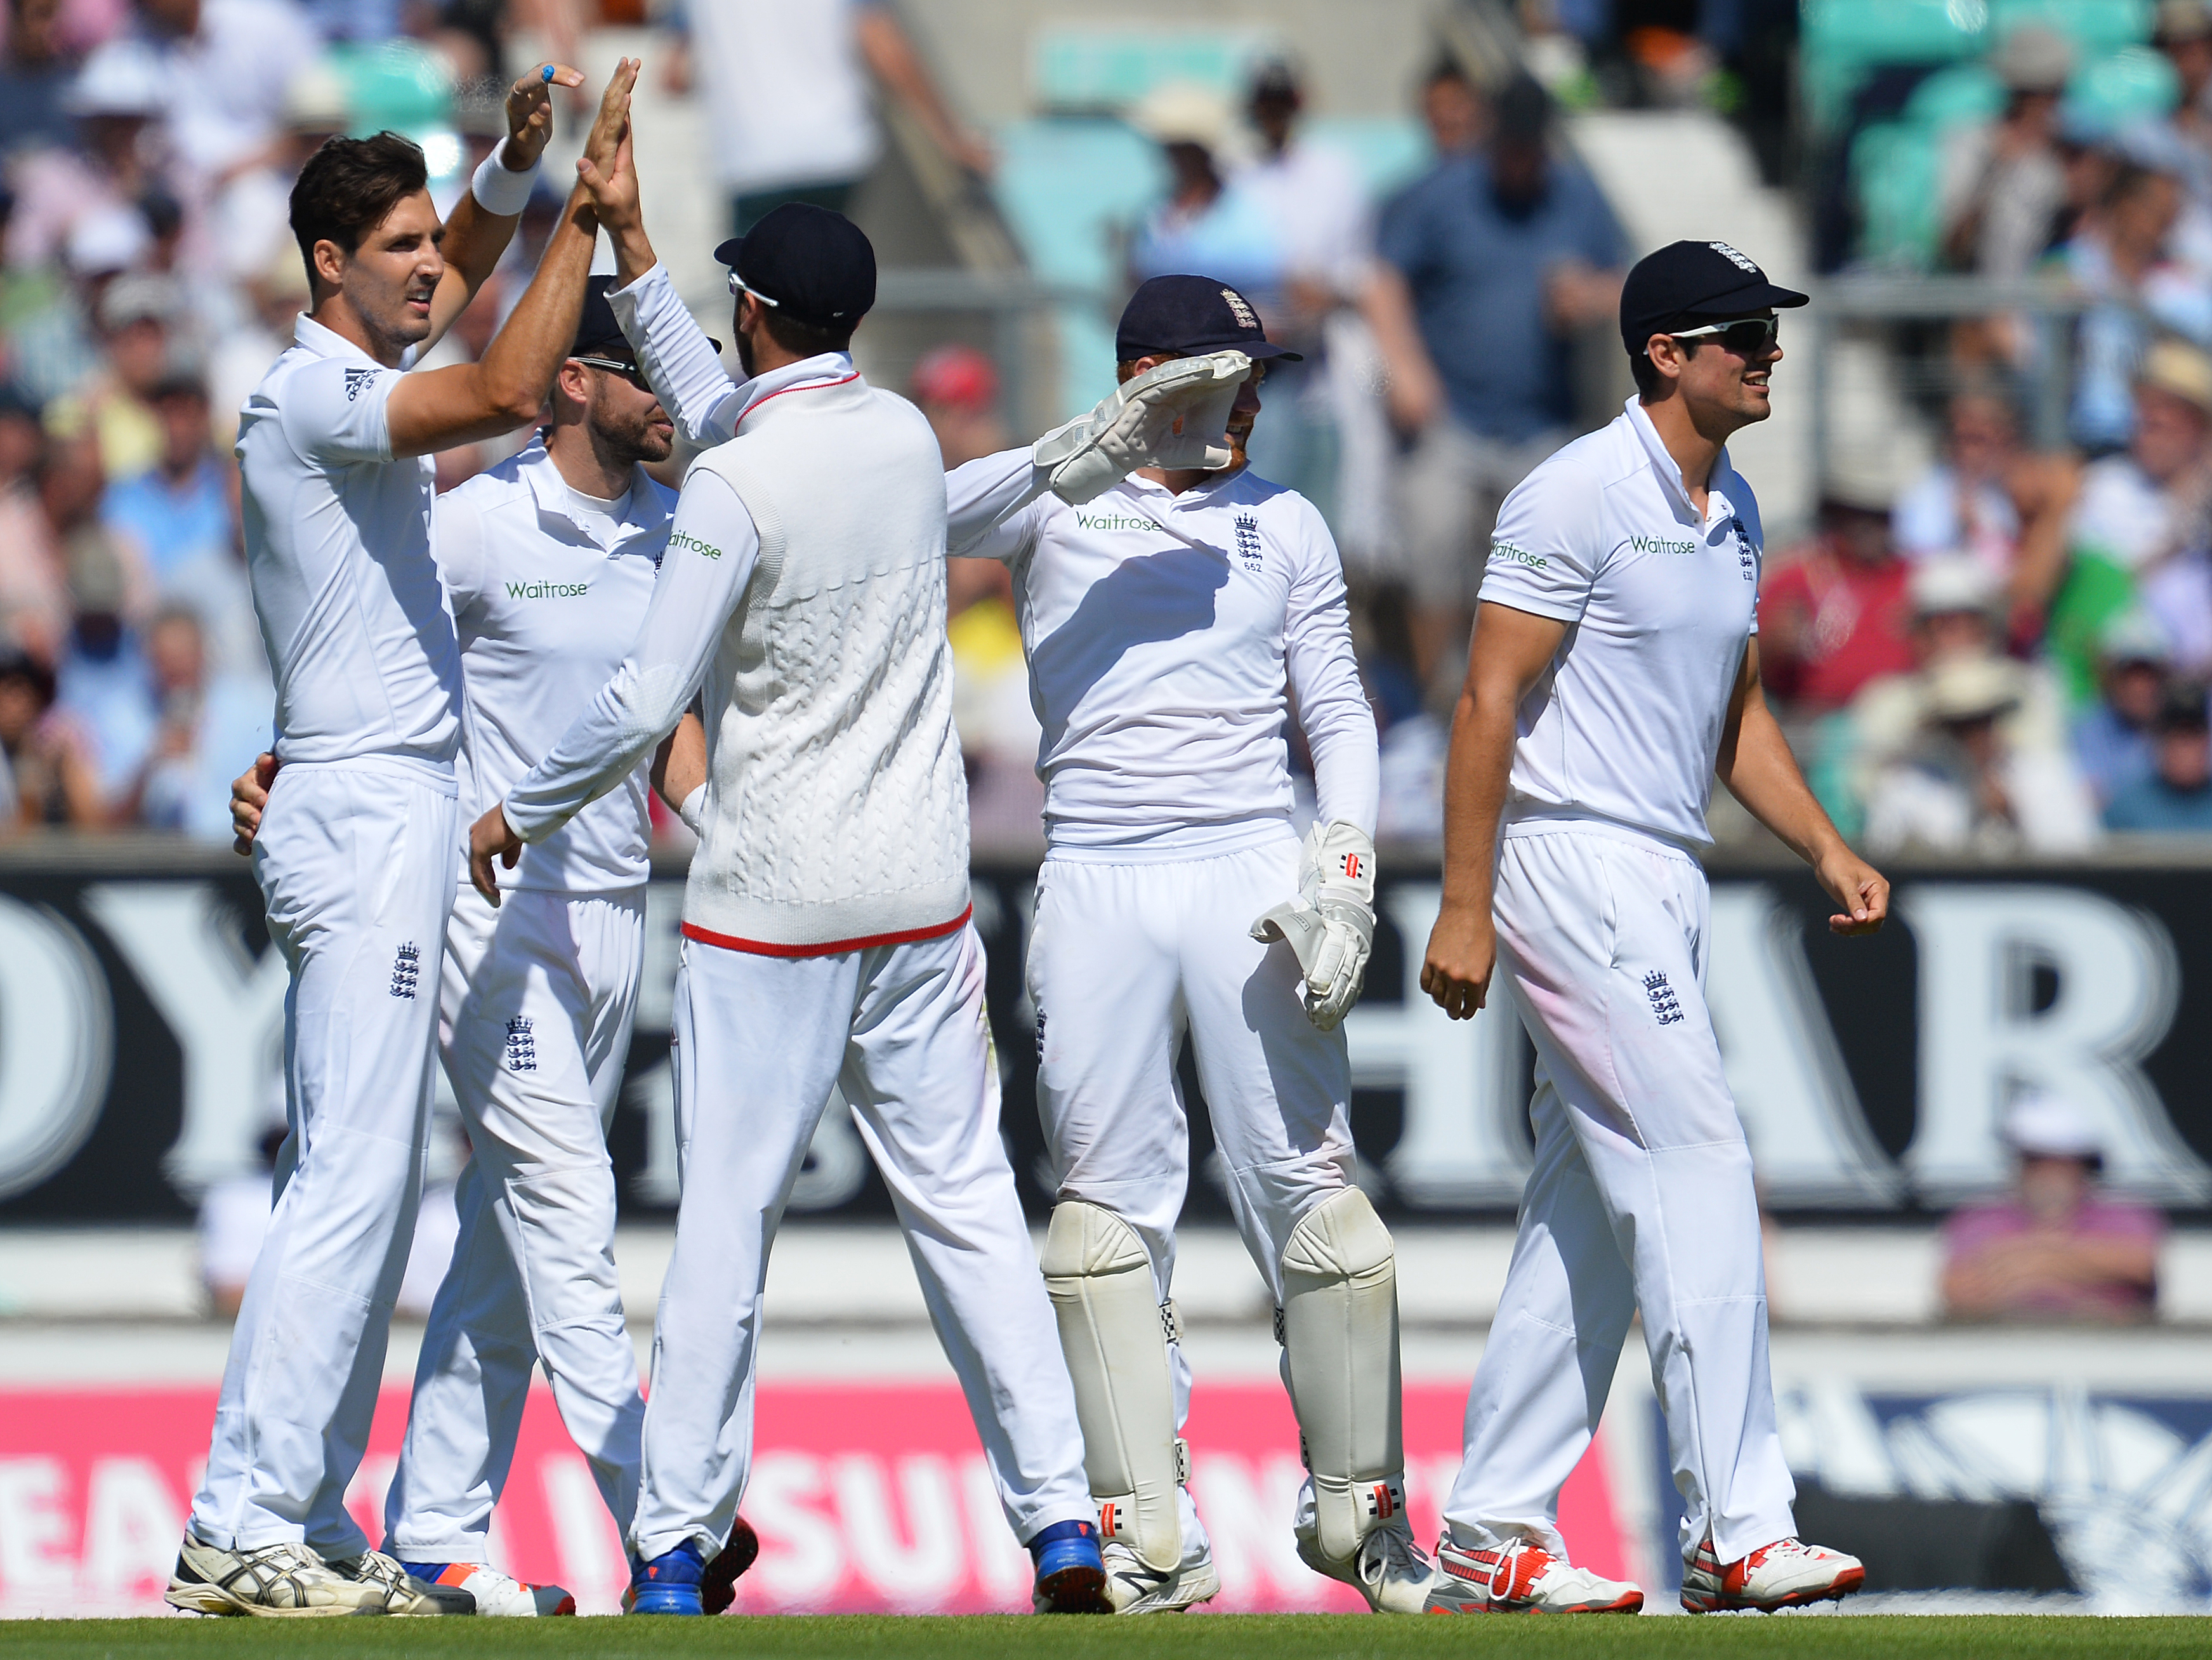 England's Steven Finn (L) celebrates after taking the wicket of Pakistan's Yasir Shah for 26 runs during play on the second day of the fourth test cricket match between England and Pakistan at the Oval in London on August 12, 2016.   / AFP PHOTO / GLYN KIRK / RESTRICTED TO EDITORIAL USE. NO ASSOCIATION WITH DIRECT COMPETITOR OF SPONSOR, PARTNER, OR SUPPLIER OF THE ECB